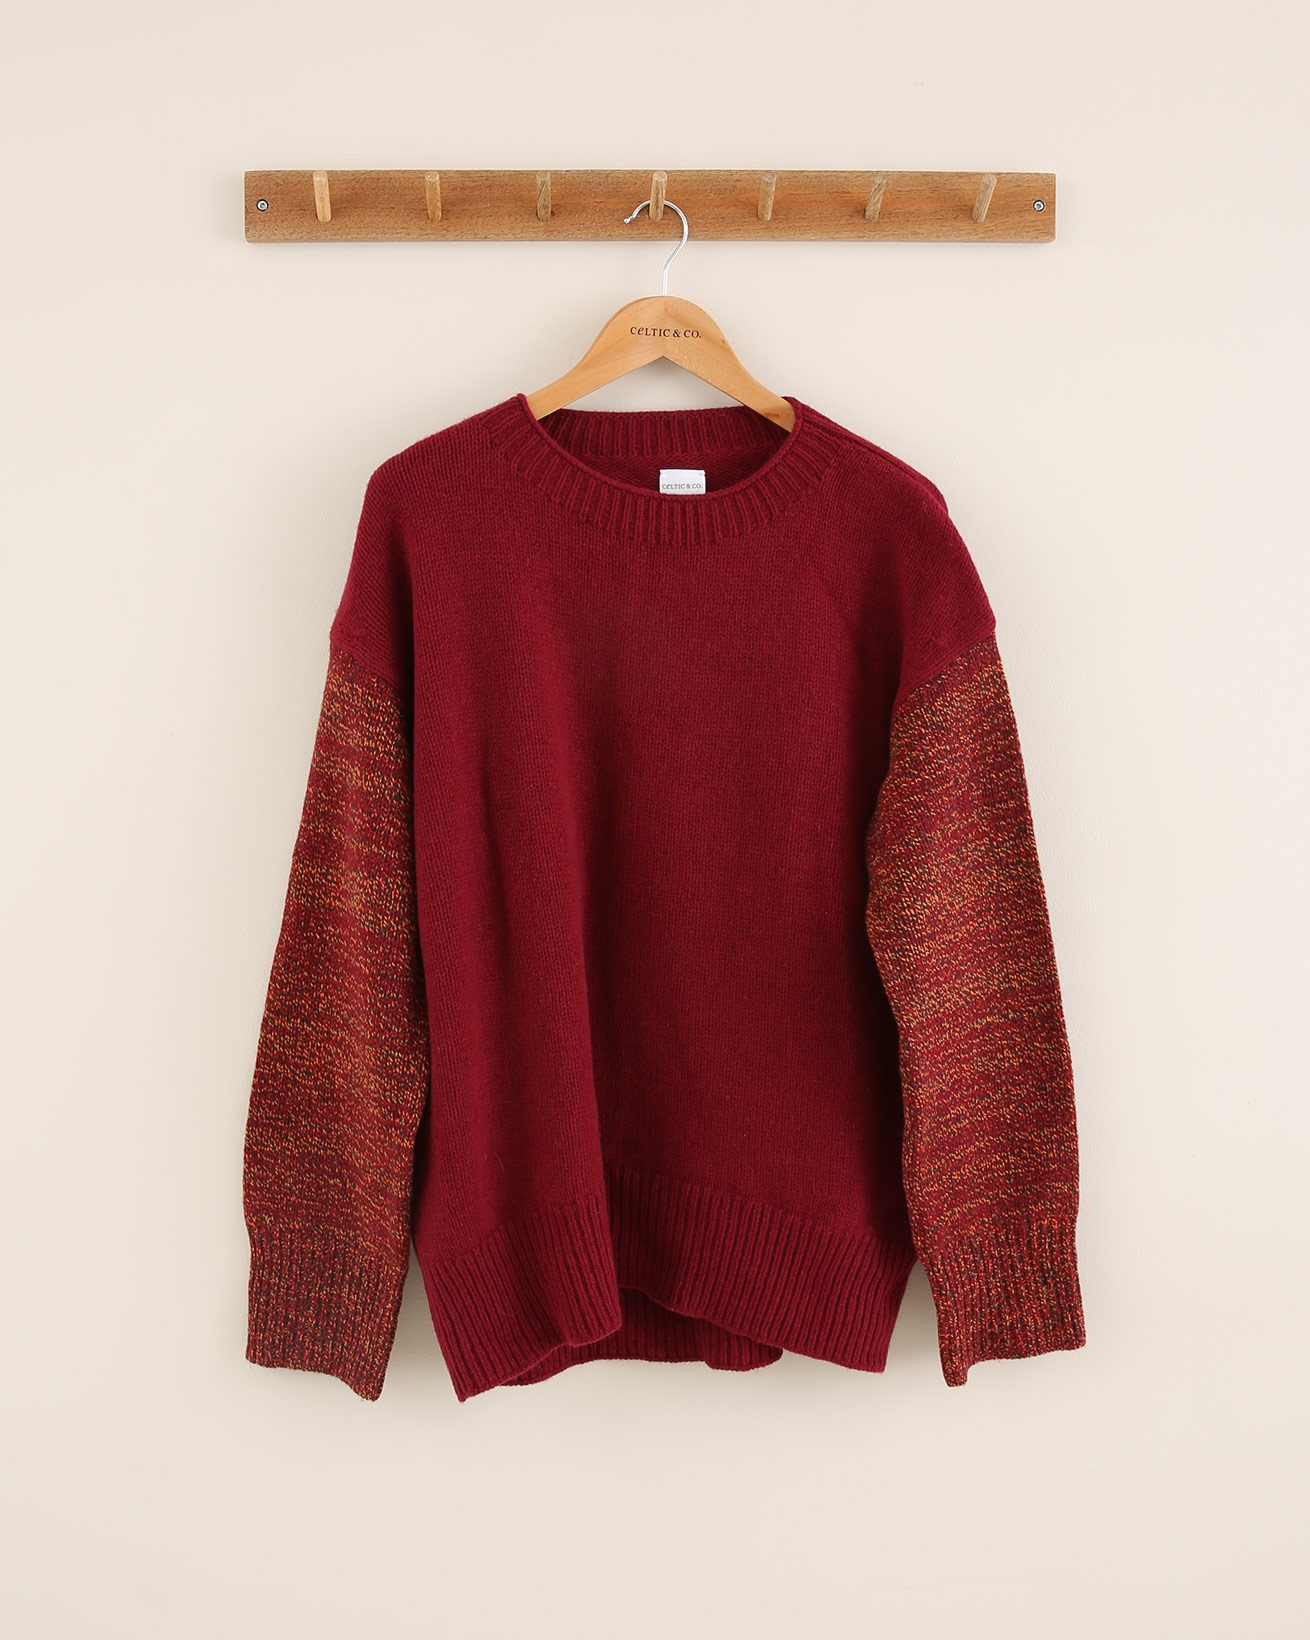 Interest Sleeve Crew Neck - Size Small - Claret/Rust - 1779